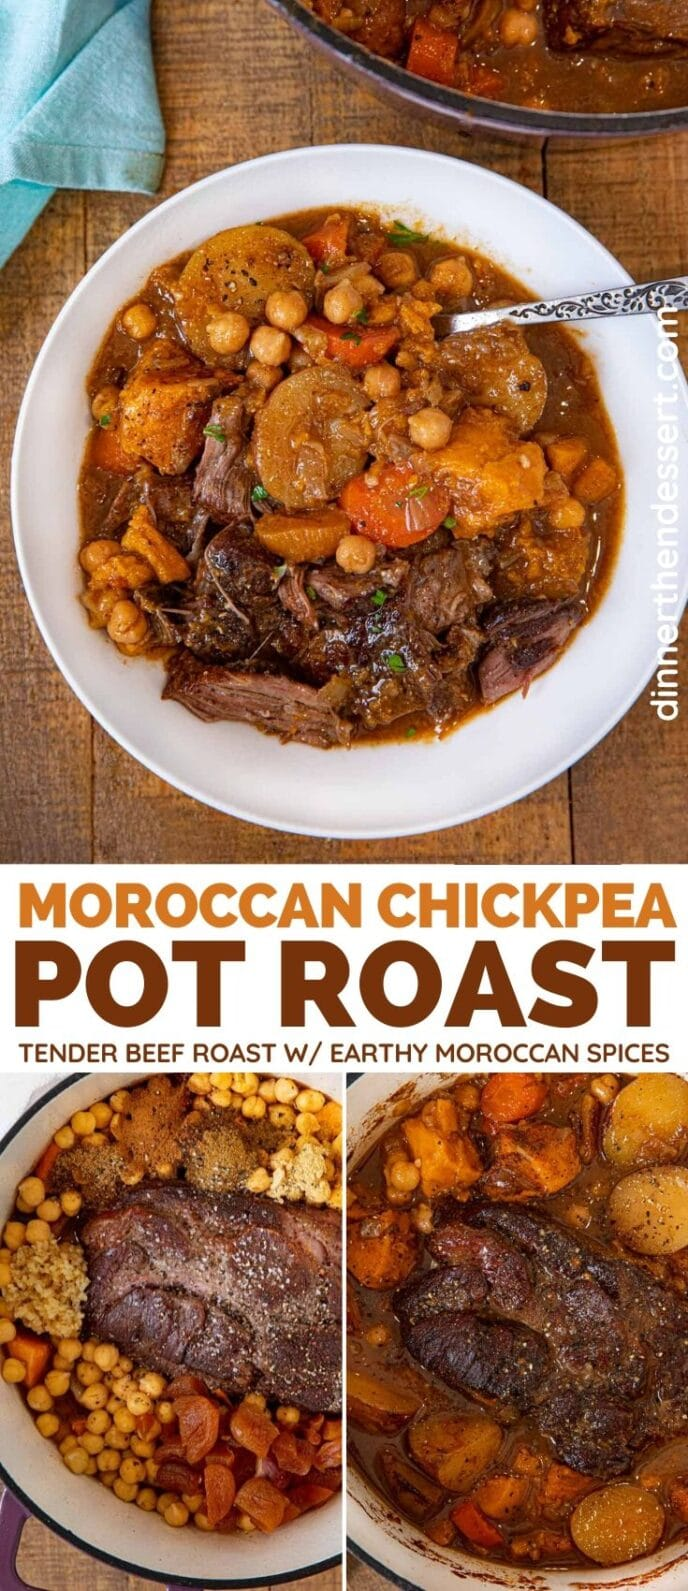 Moroccan Chickpea Pot Roast collage